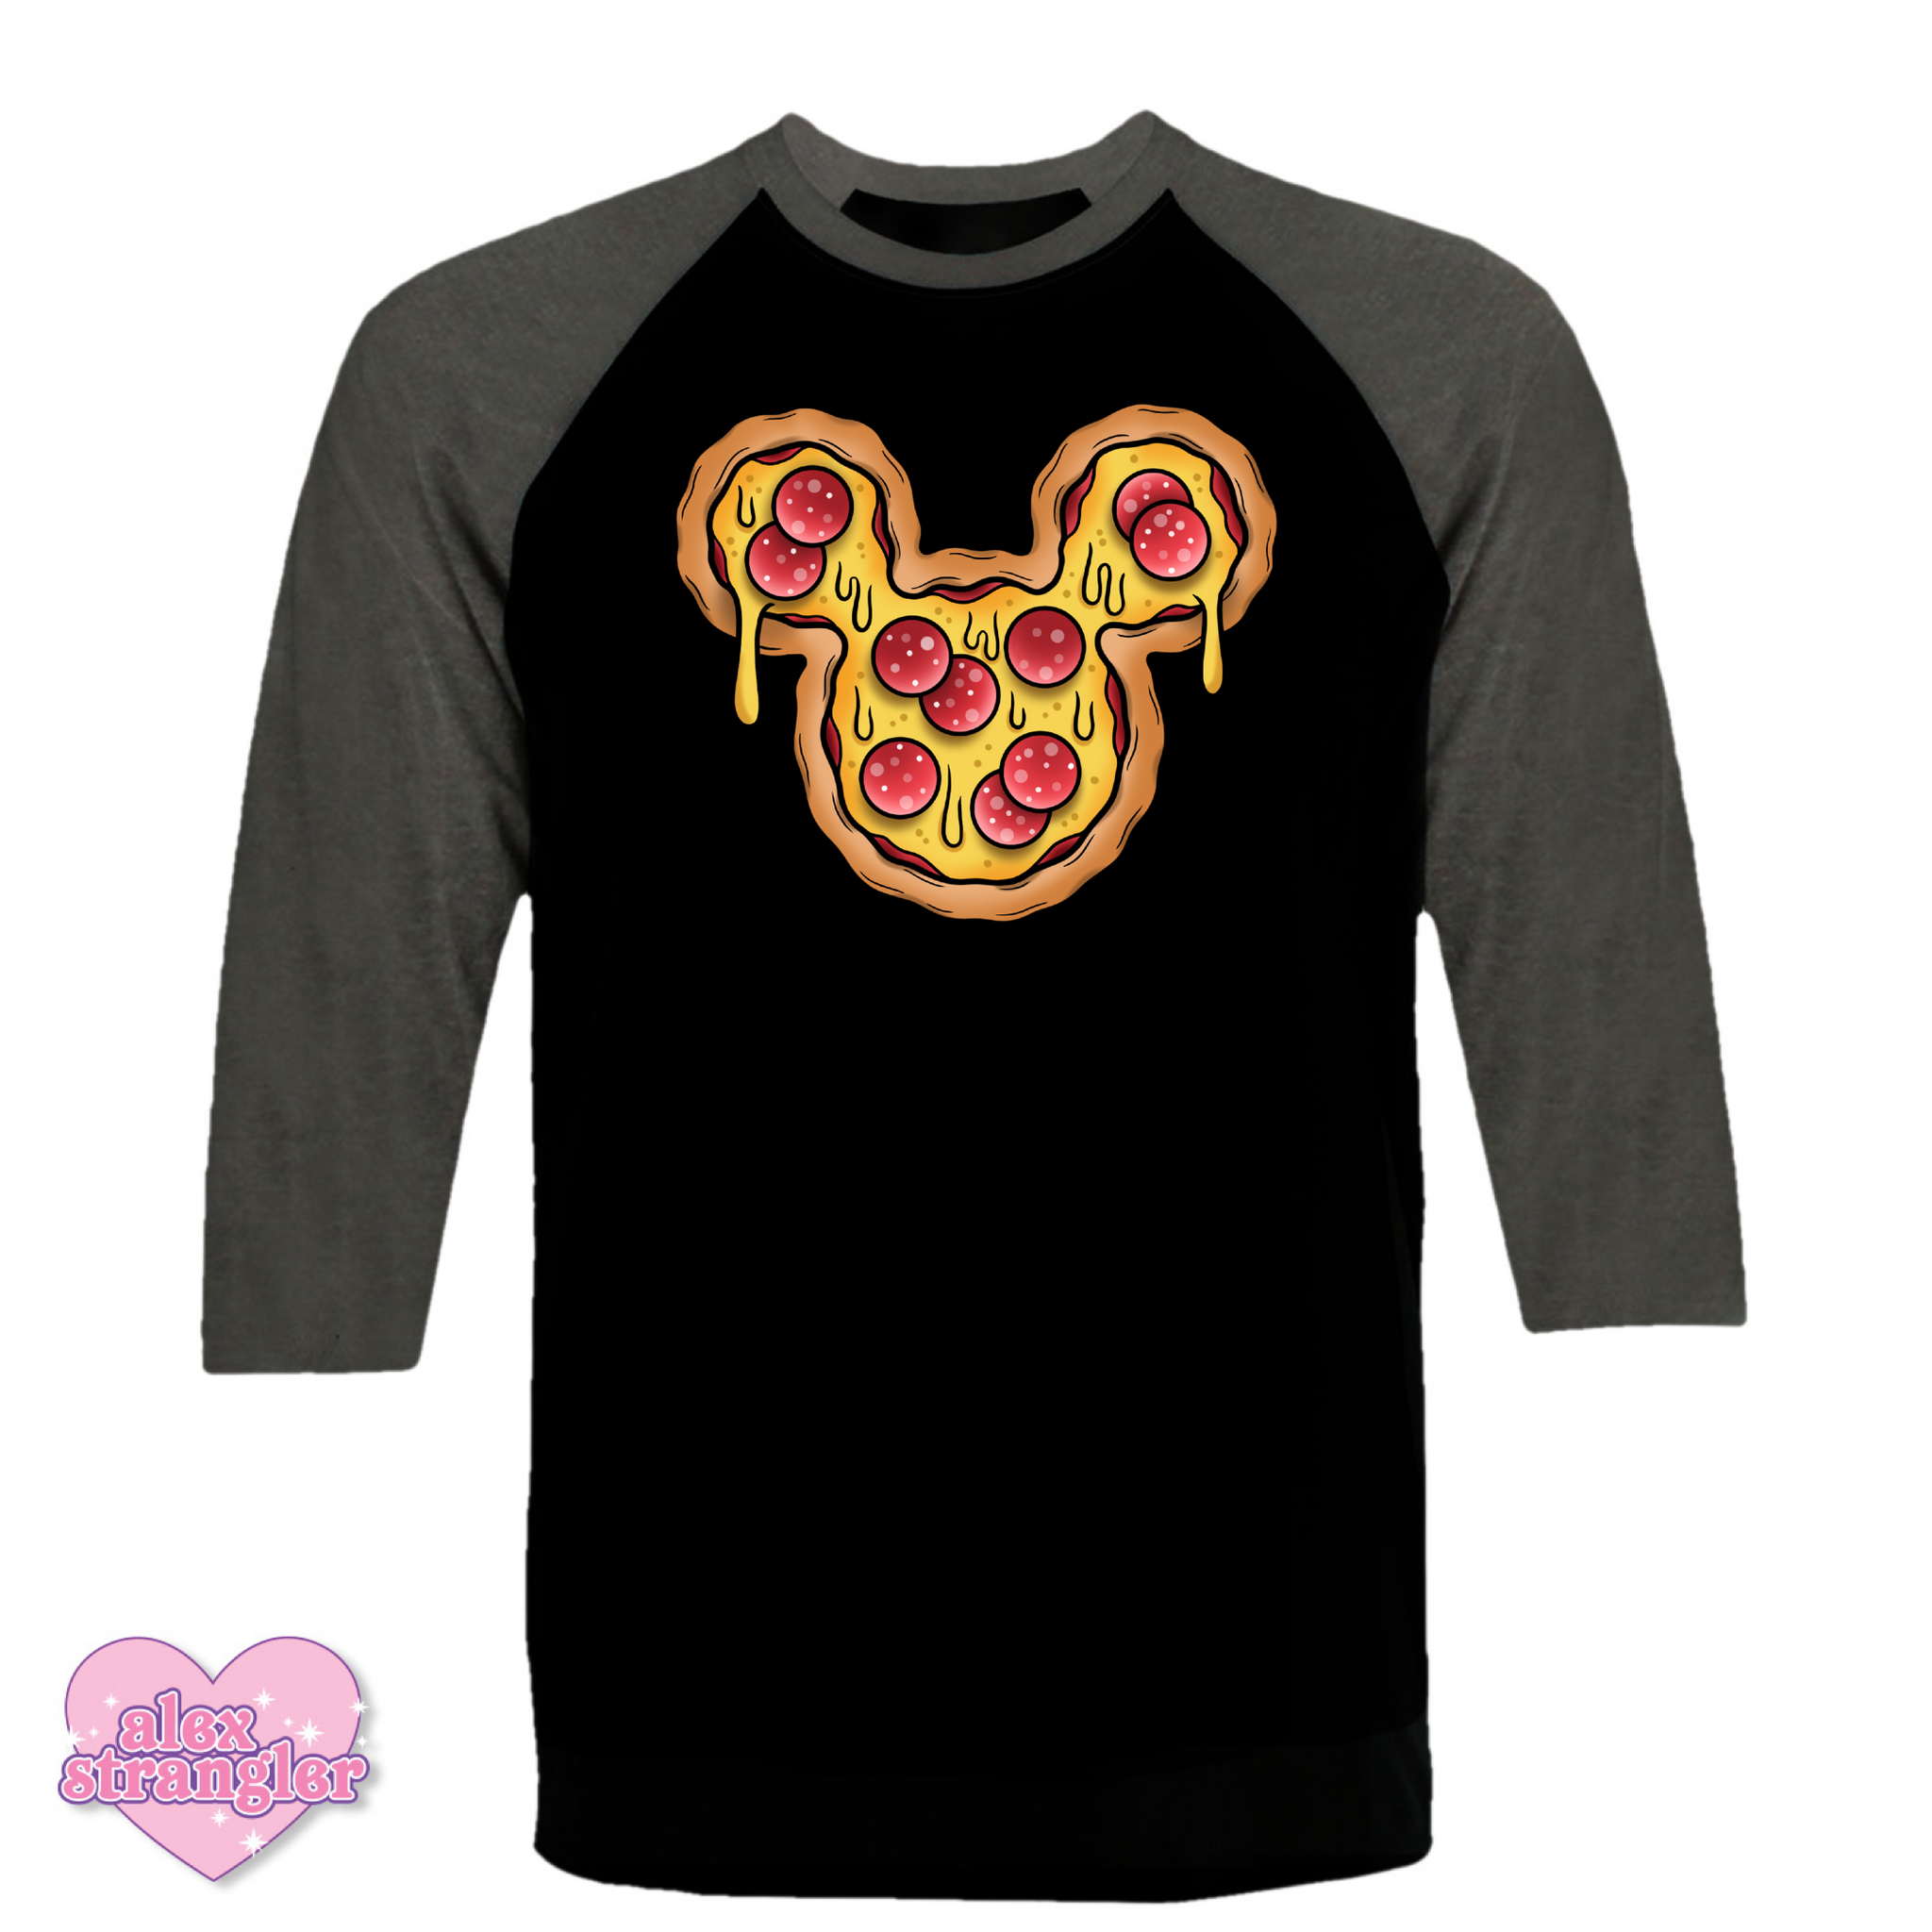 Mr. Pizza Mouse - Unisex Raglan